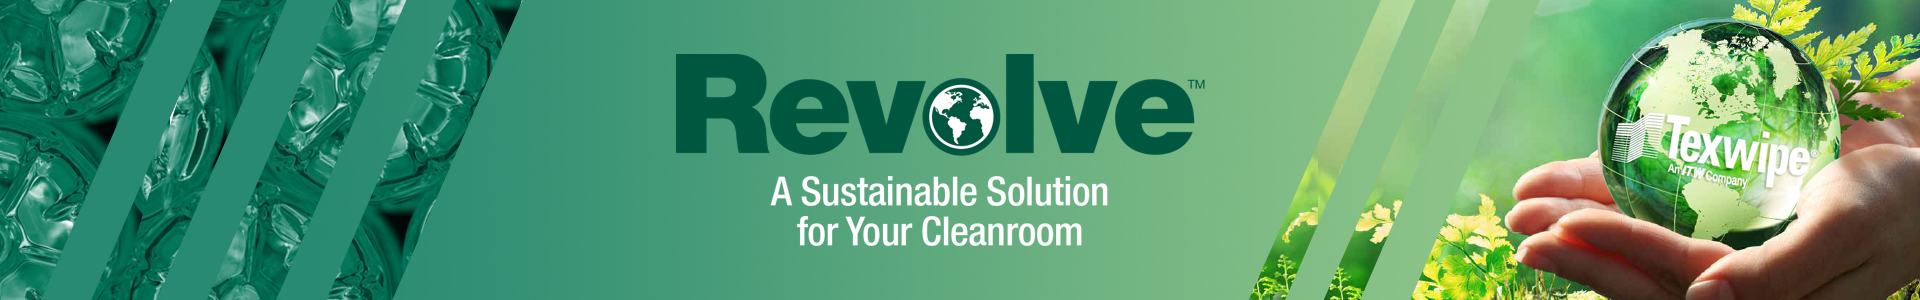 Texwipe Revolve is the green solution that we provide to the market